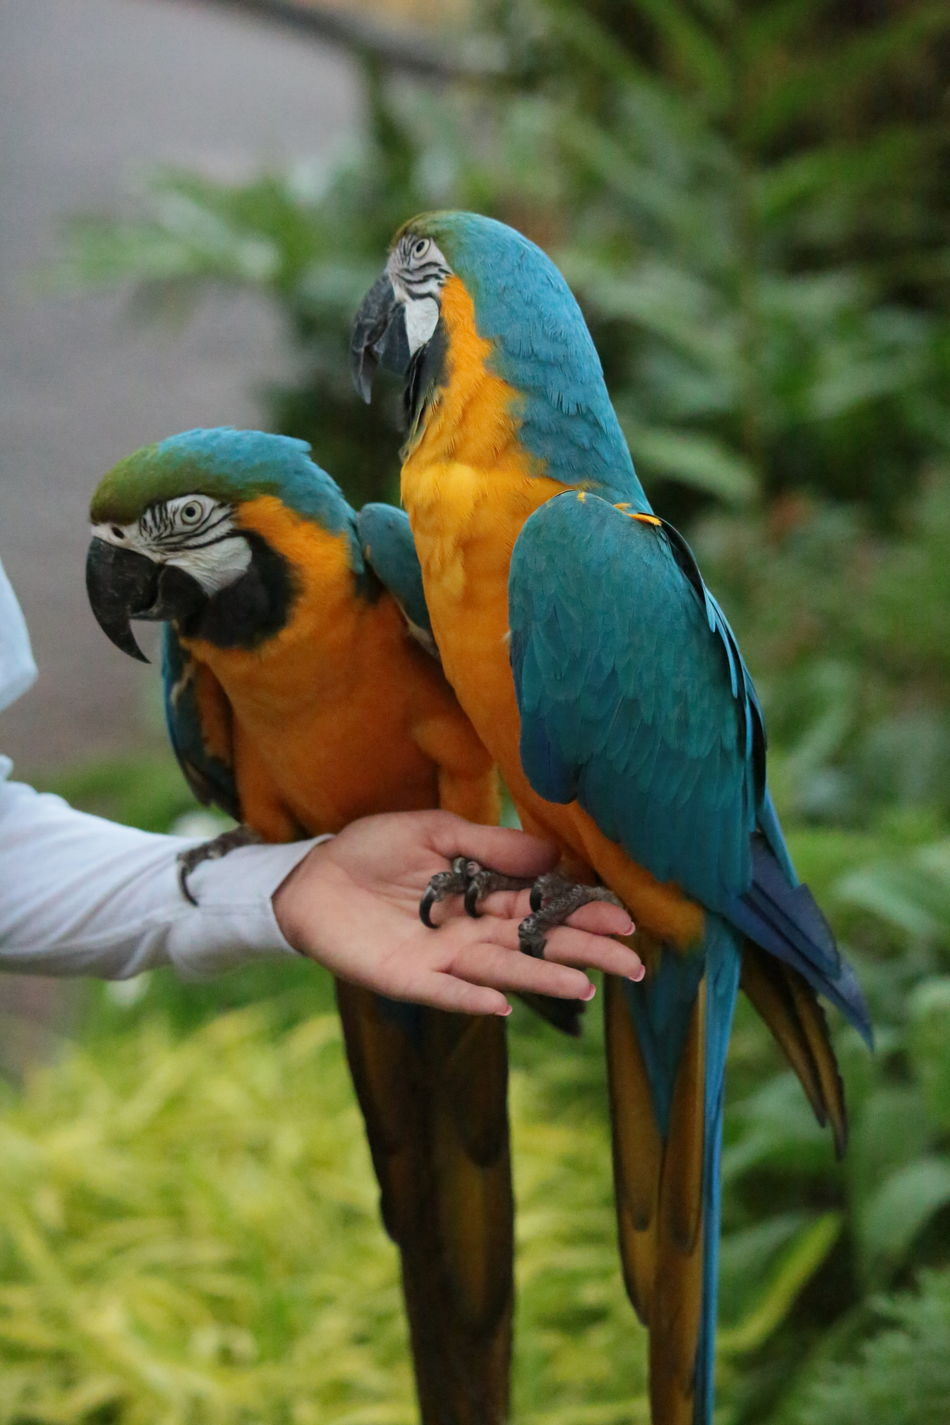 Parrot Bird Animal Wildlife Multi Colored Animal Themes Pets Close-up Gold And Blue Macaw Macaw 3XSPUnity Beautiful Nature Beauty In Nature Nature Birds Of EyeEm  Frends Cloursplash Macaw Parrot Pair Of Birds Parrots Birds Of A Feather Birds Of EyeEm